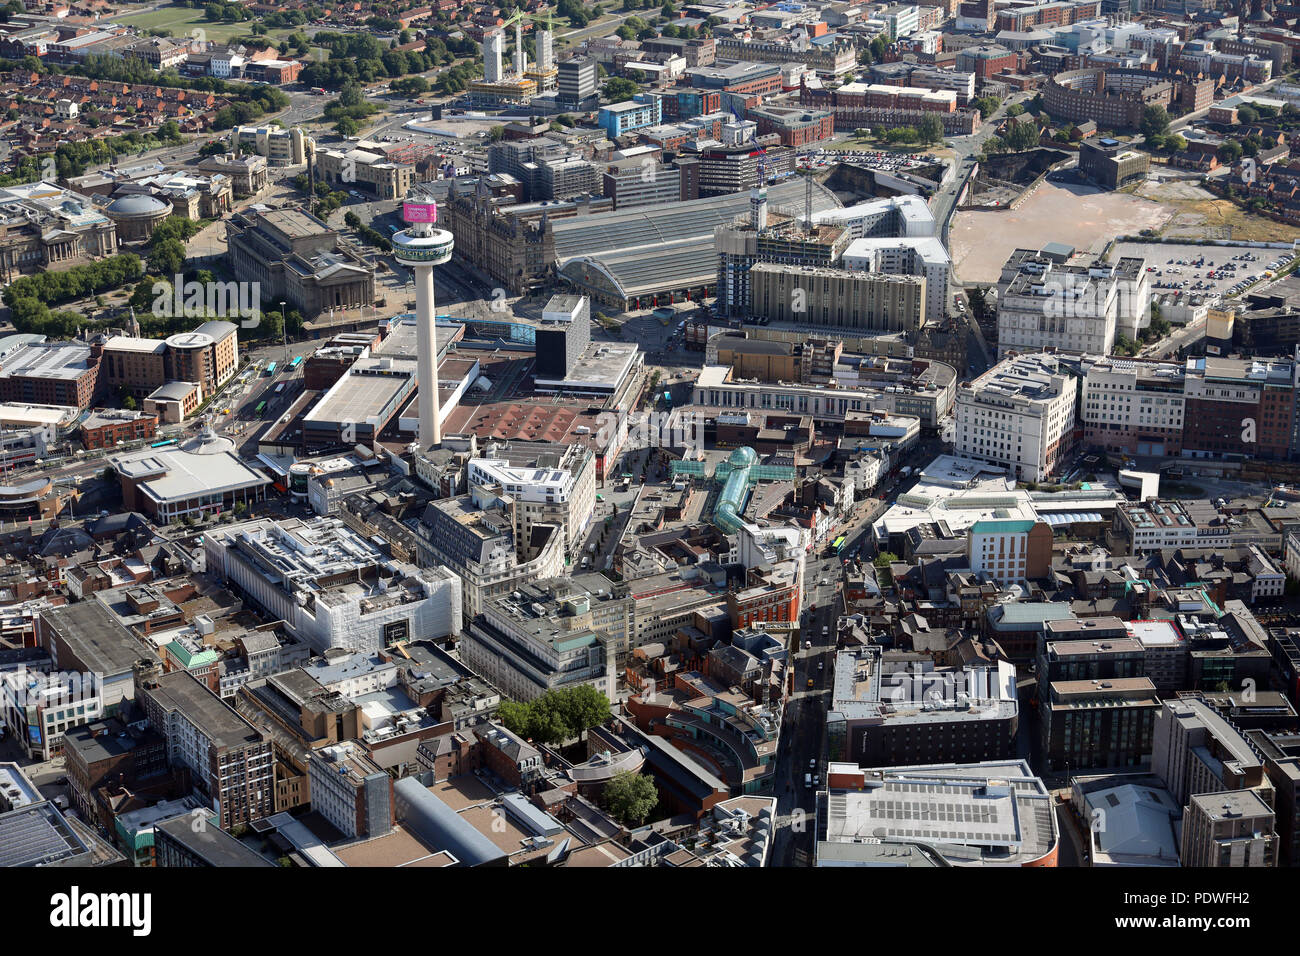 aerial view of Liverpool city centre including Radio City Tower and Lime Street Station - Stock Image